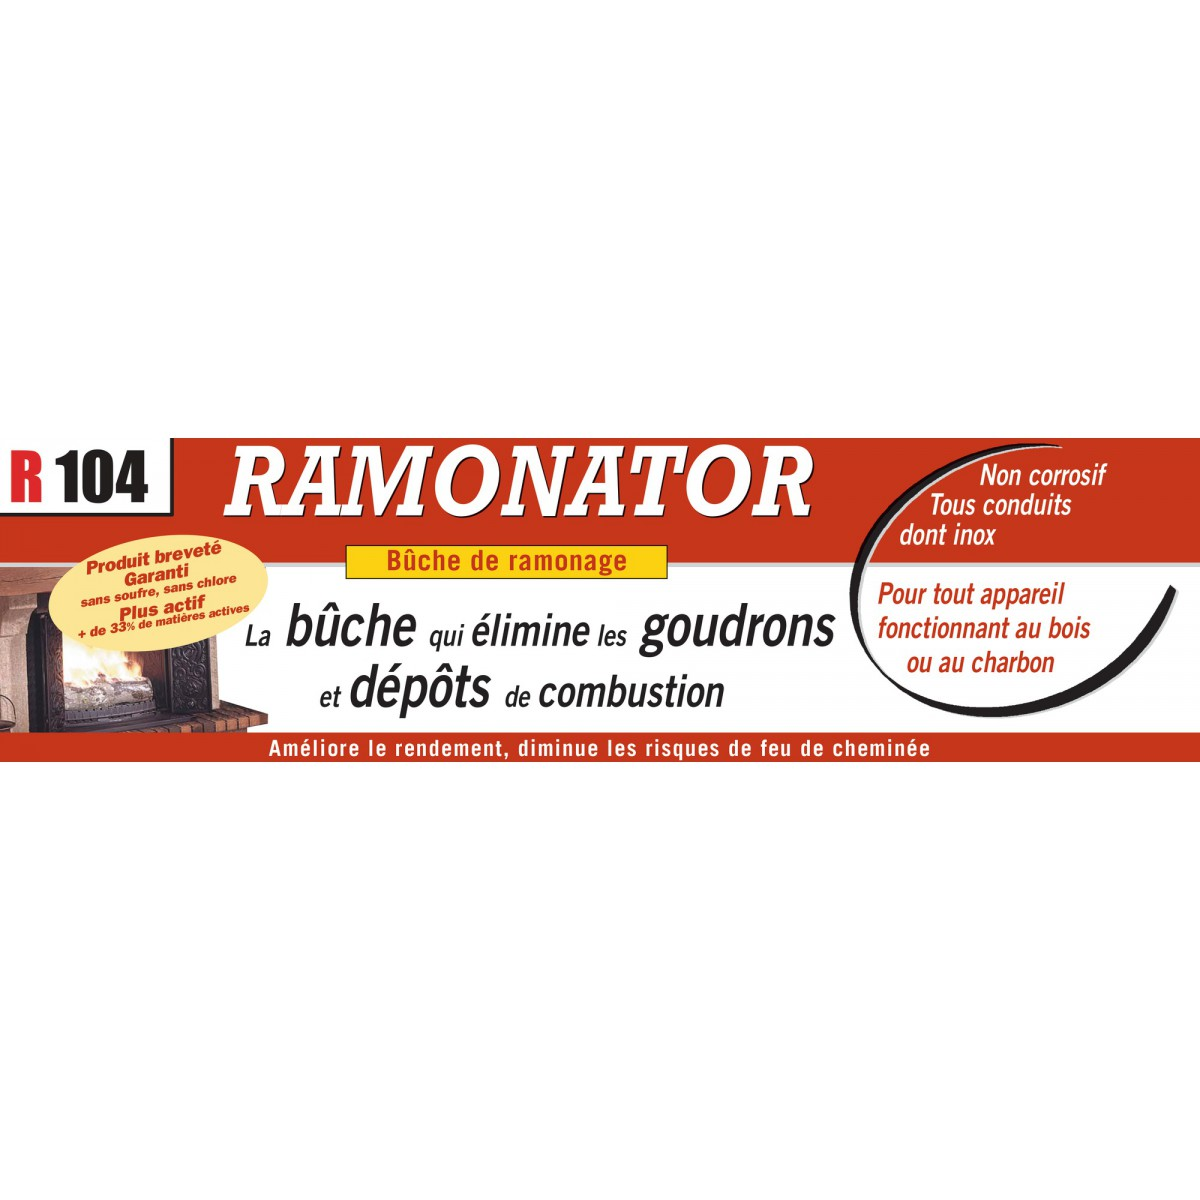 B che de ramonage ramonator de b che ramonage 1087479 mon magasin g n ral - Buche de ramonage avis ...